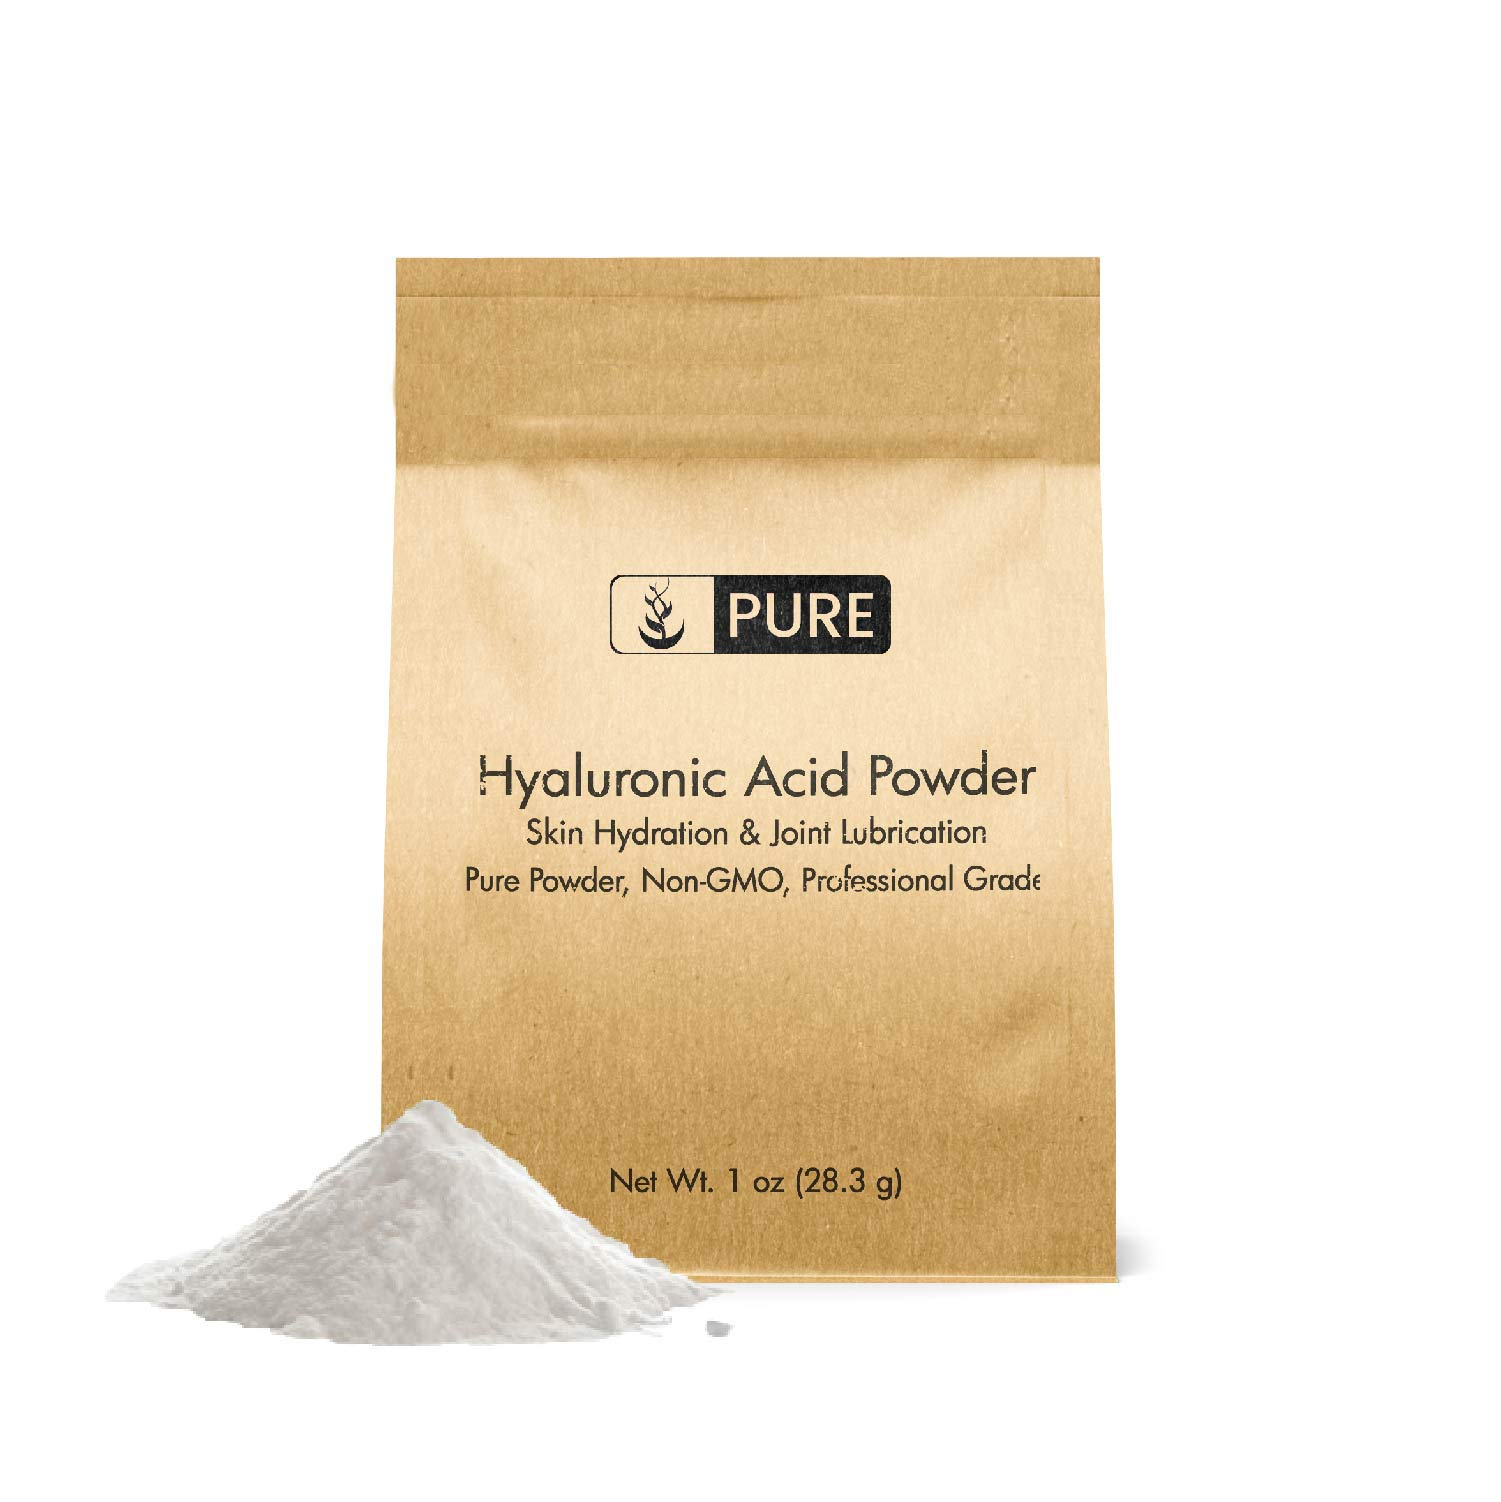 Hyaluronic Acid Powder (1 oz) by Pure Ingredients, Highest Purity, Food & Cosmetic Grade, Skin Care, Eco-Friendly Packaging